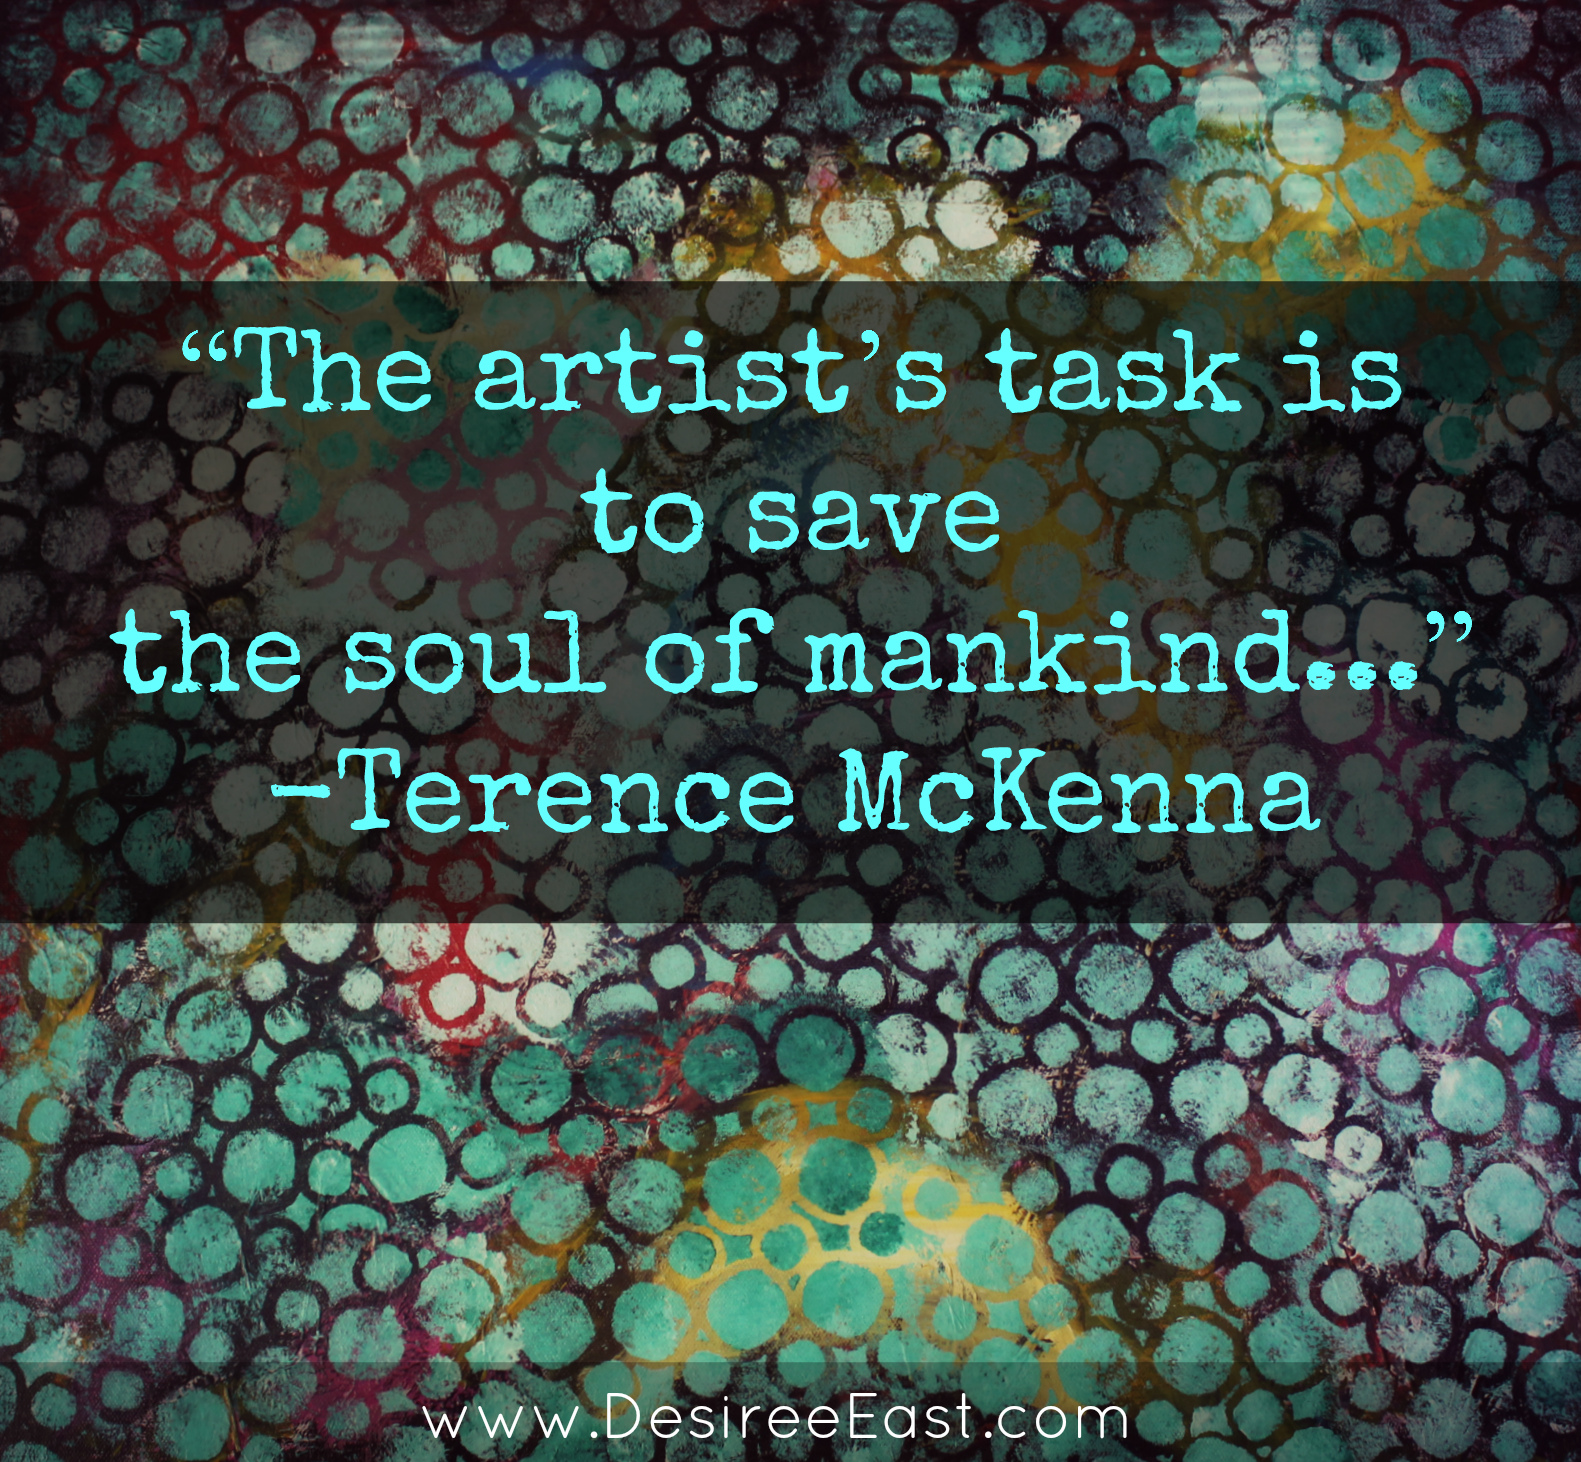 terence mckenna quote painting by desiree east.jpg